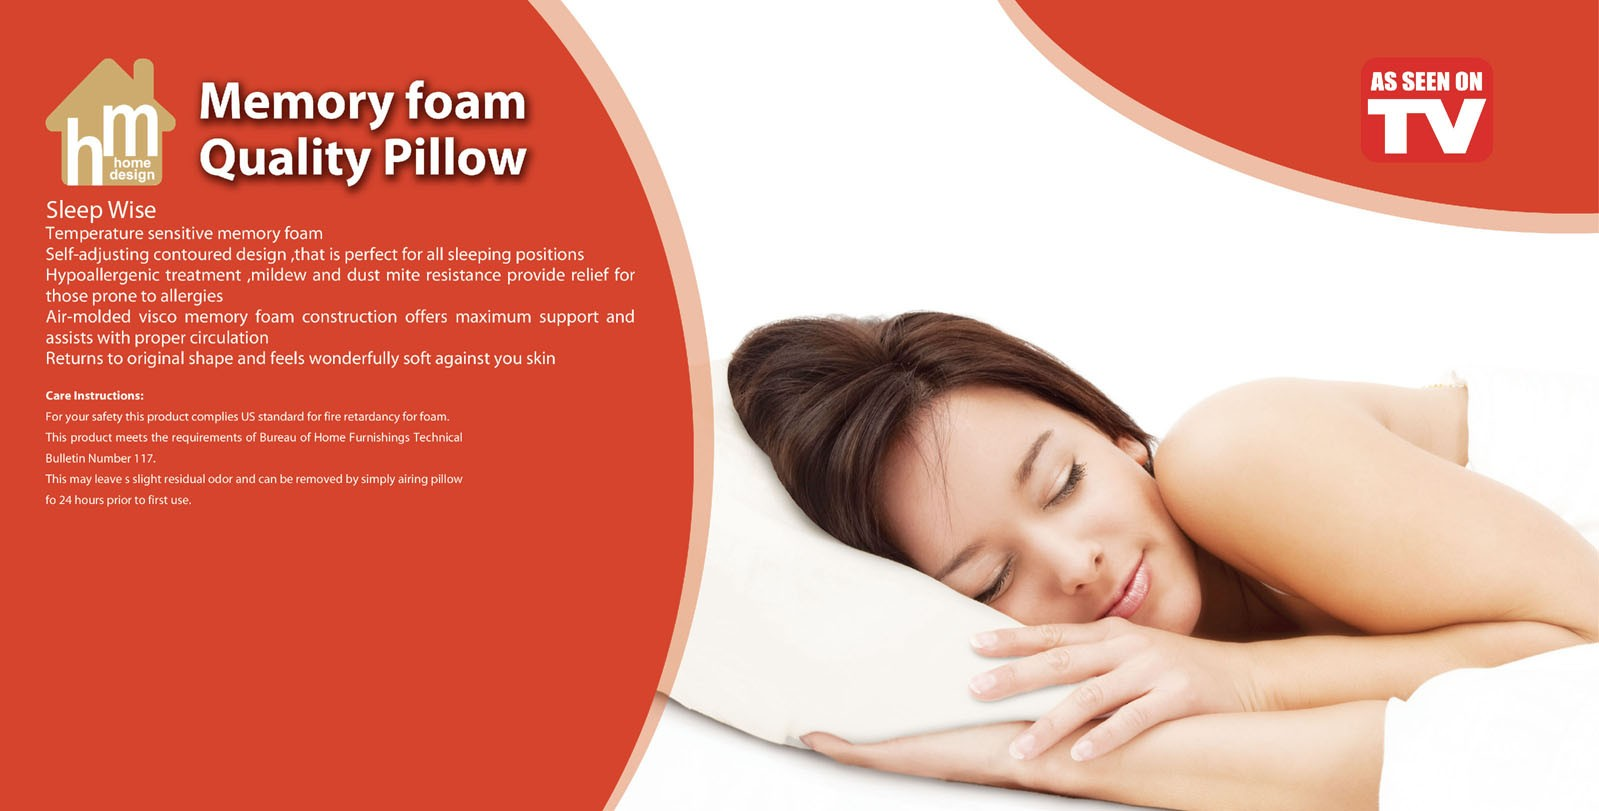 QUILTED MEMORY FOAM PILLOW